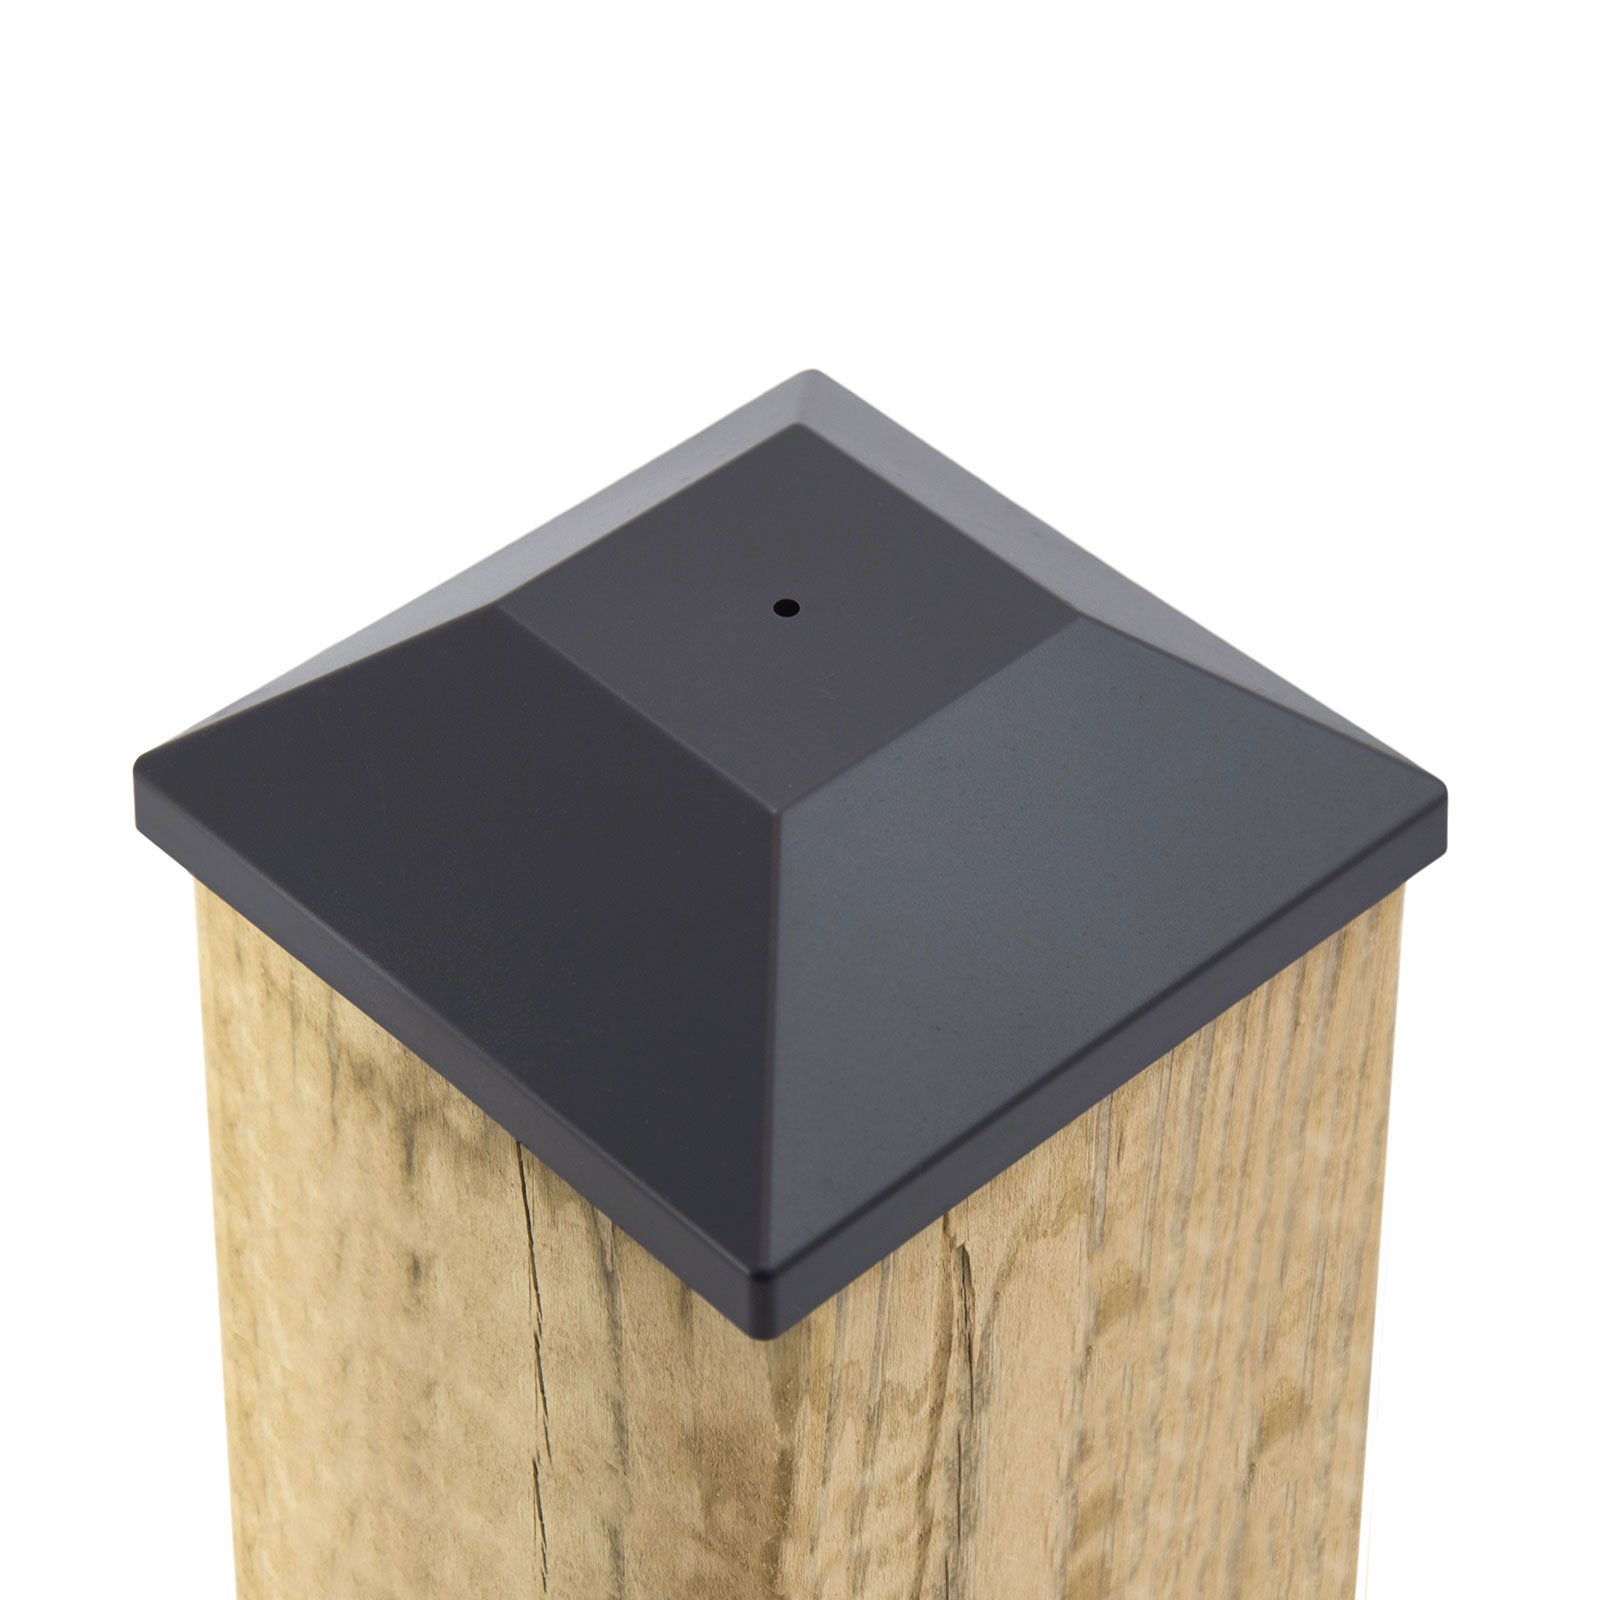 (32 Pack) New Wood Fence Post Black Caps 6X6 (5 5/8'') Pressure Treated Wood Made In USA (32)